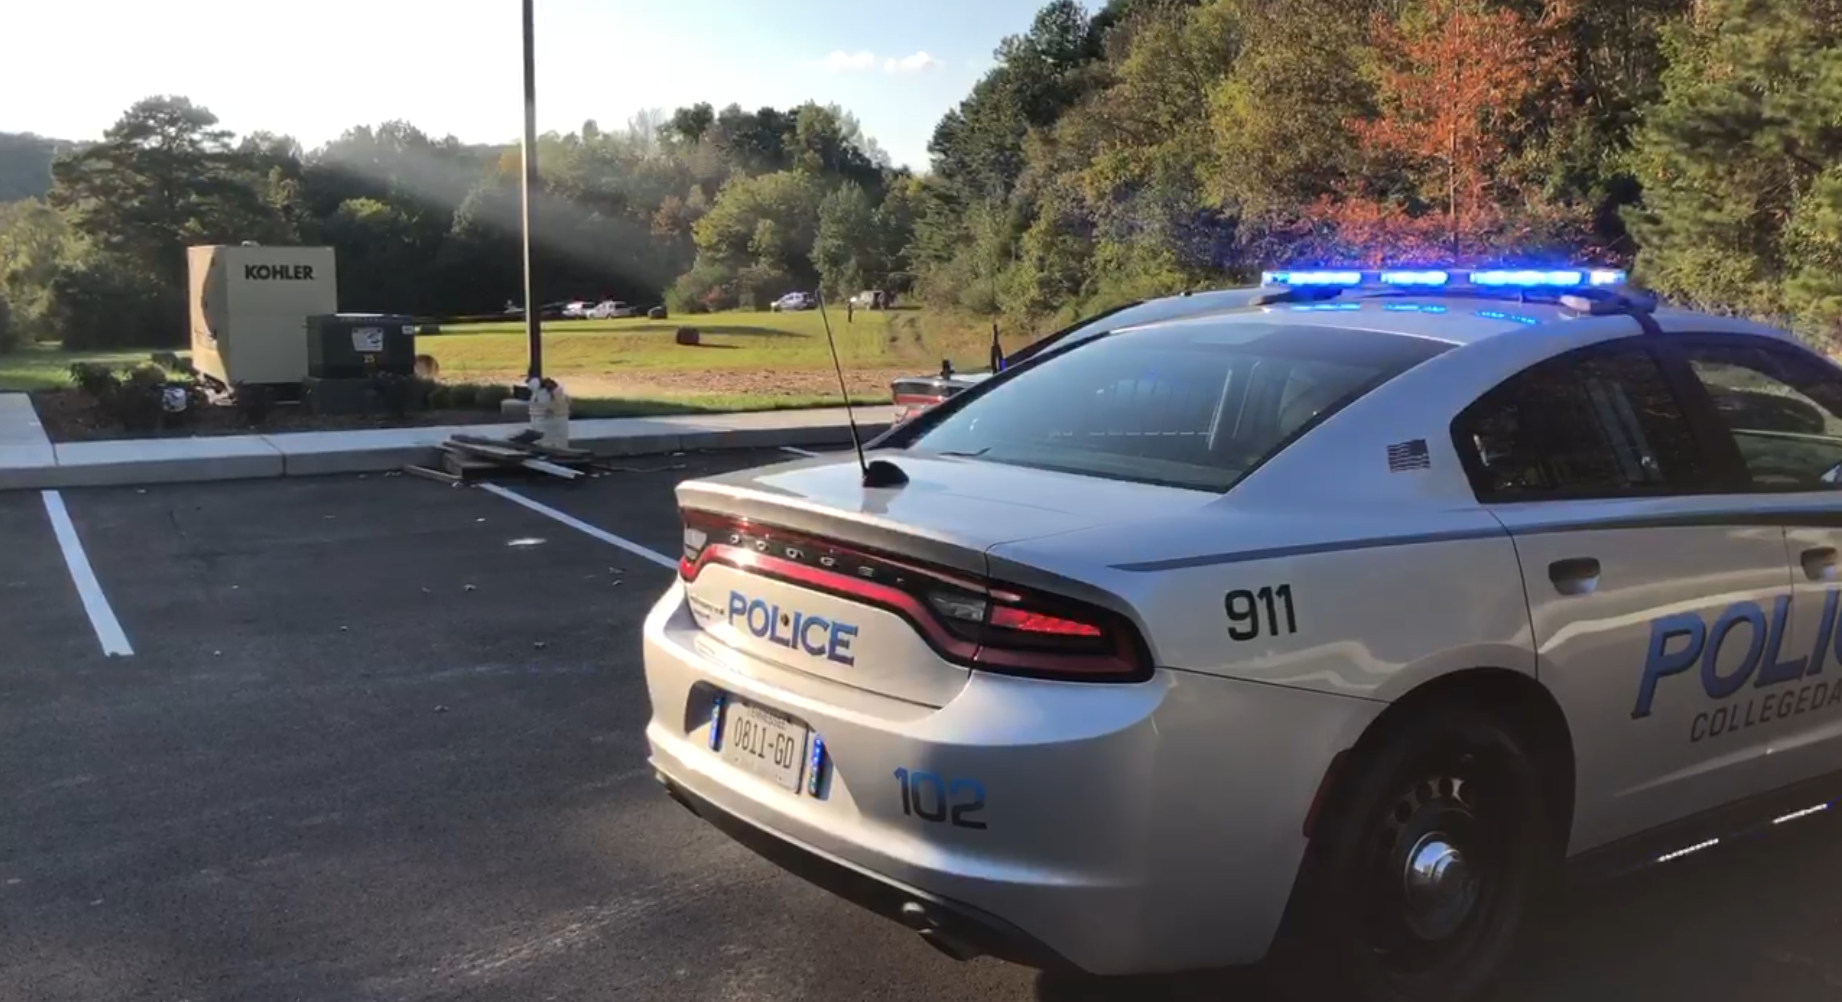 Plane crashes near Collegedale airport 10.12.2020. (Image: WTVC)